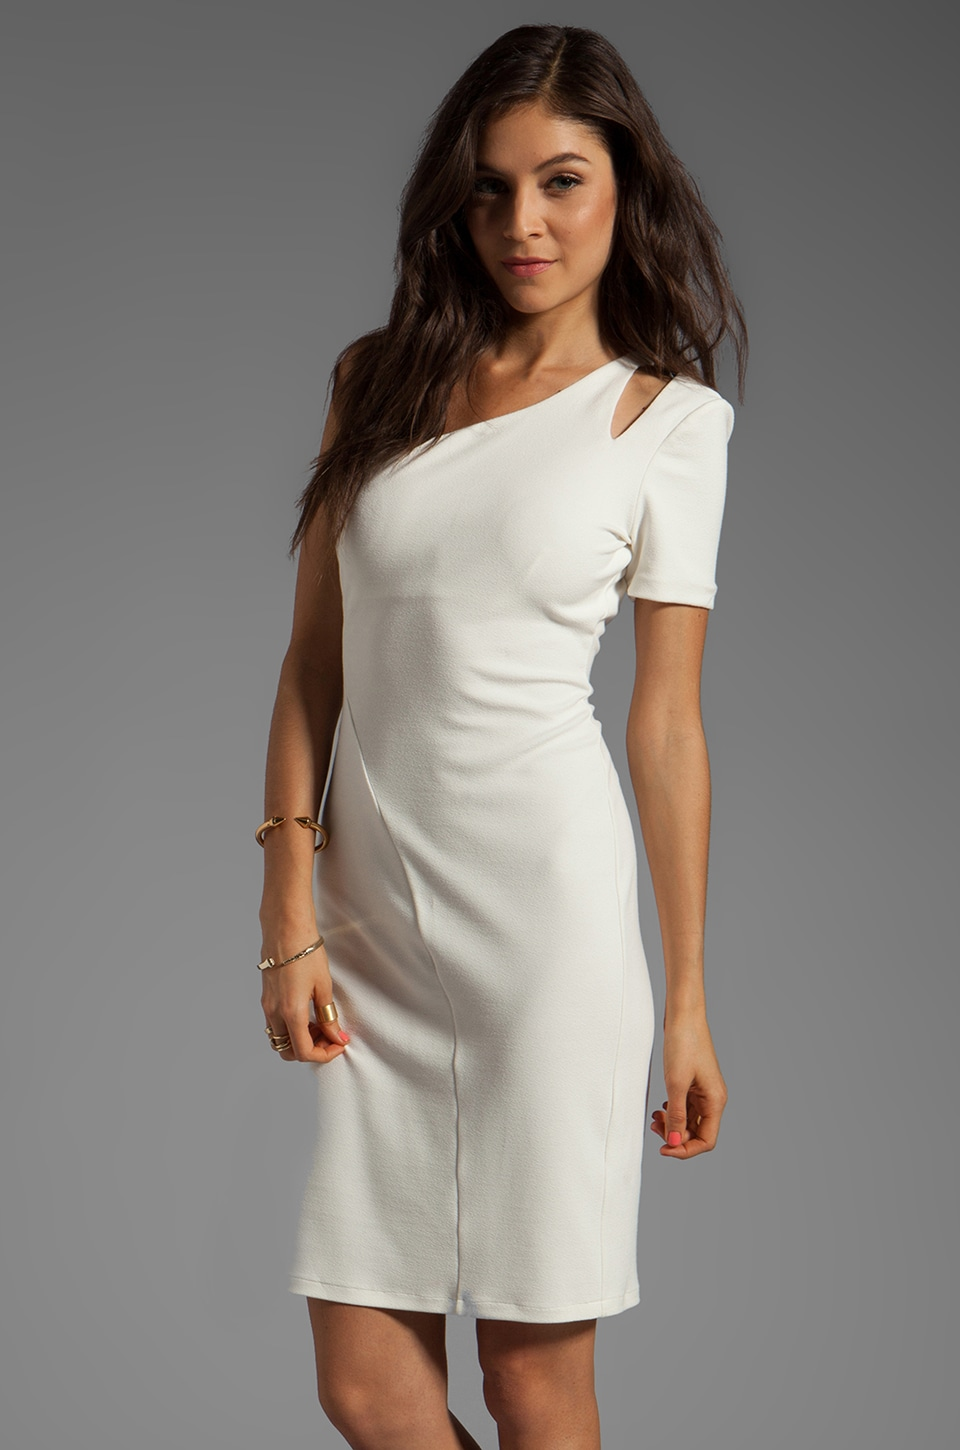 Halston Heritage One Sleeve Dress With Shoulder Cut Out in Off White